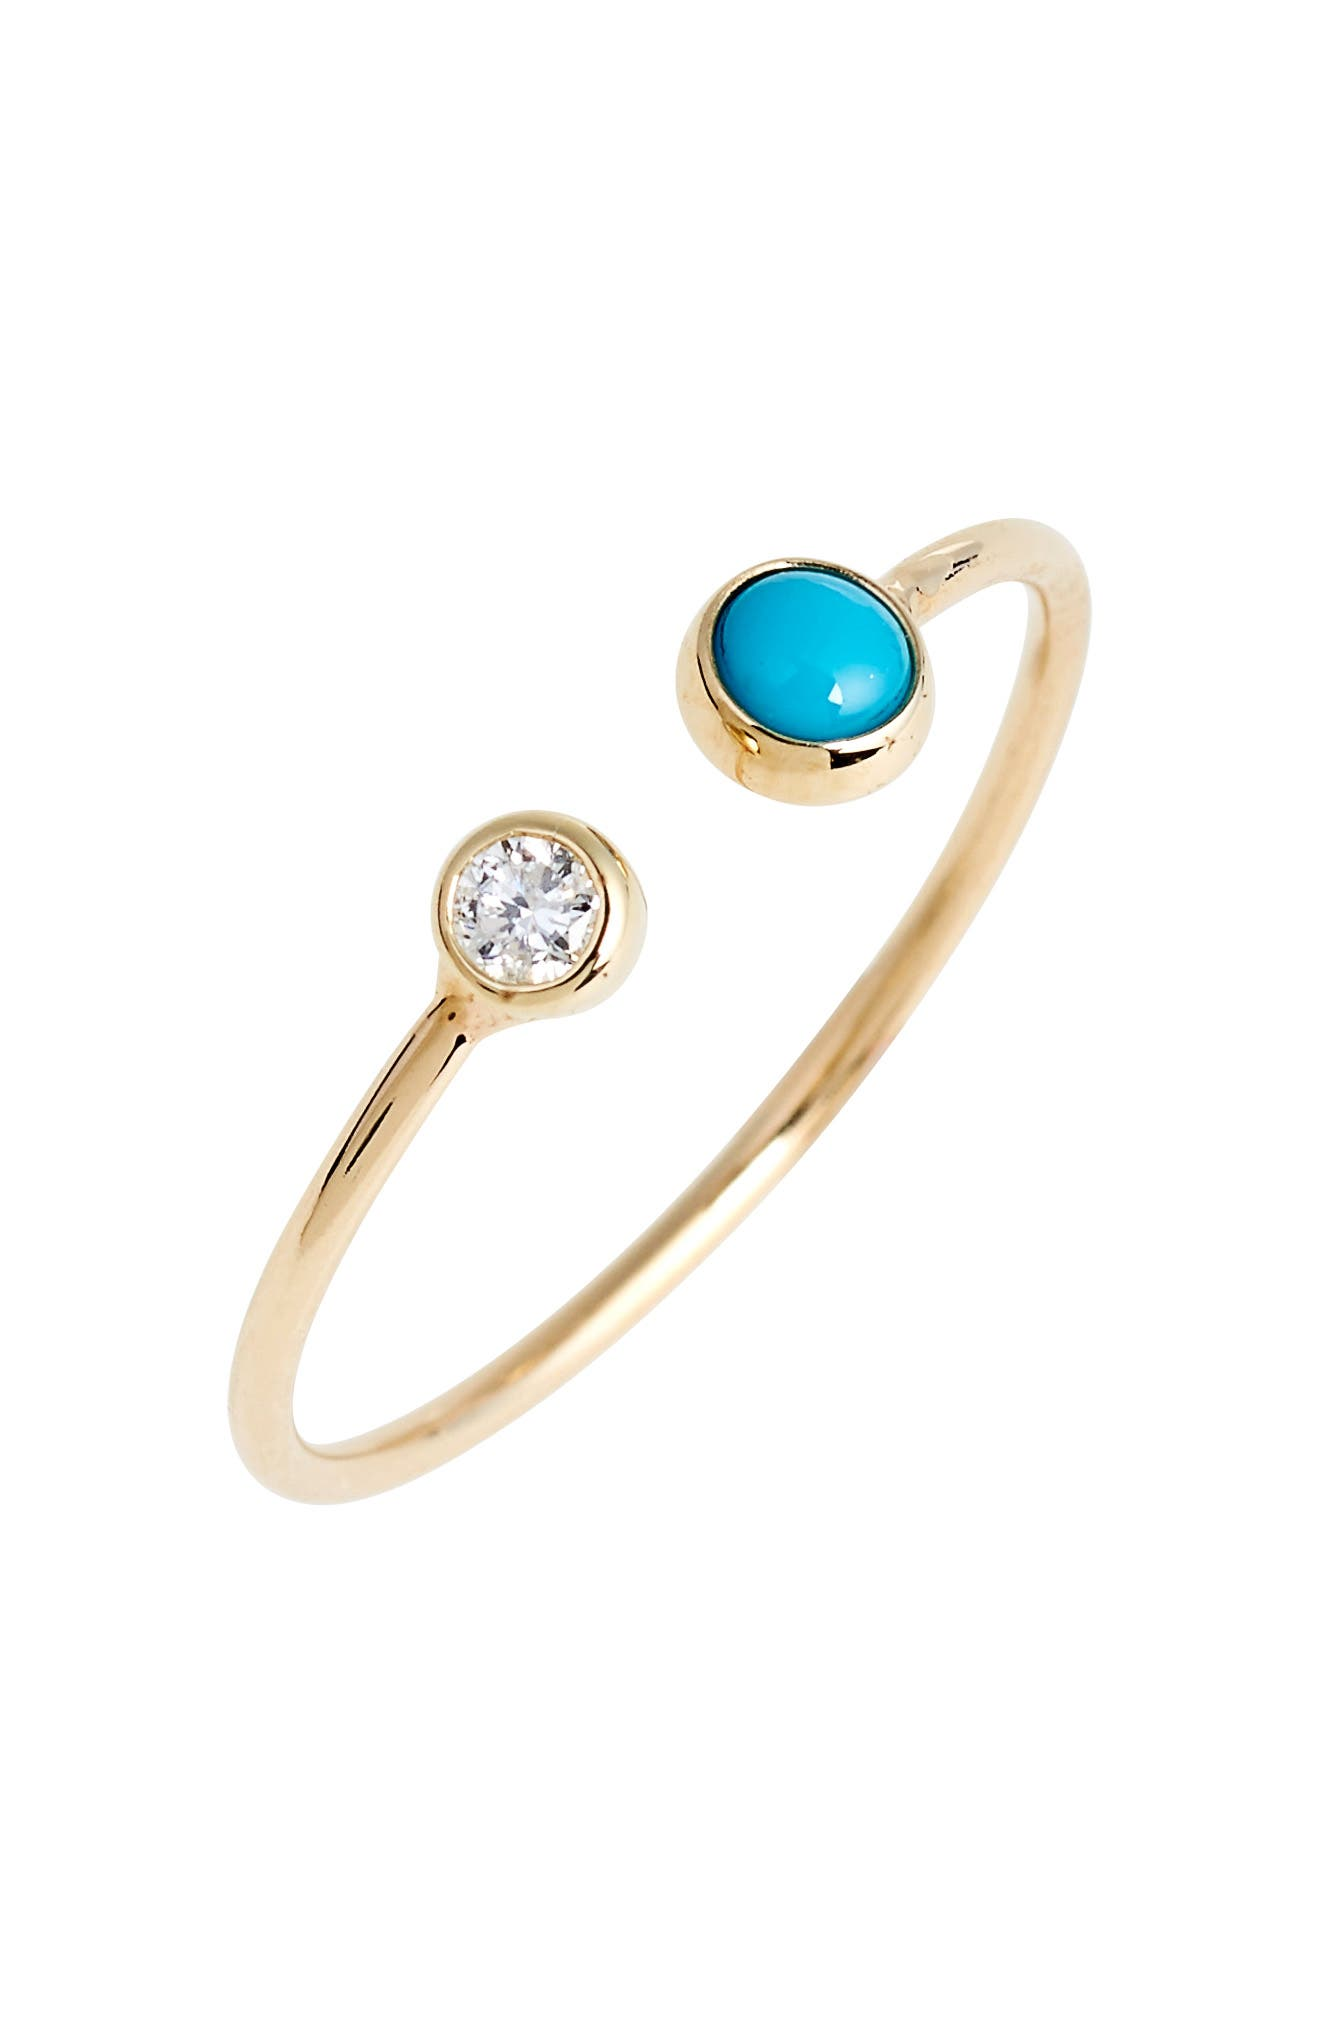 Diamond & Turquoise Open Stack Ring,                             Main thumbnail 1, color,                             YELLOW GOLD/ TURQUOISE